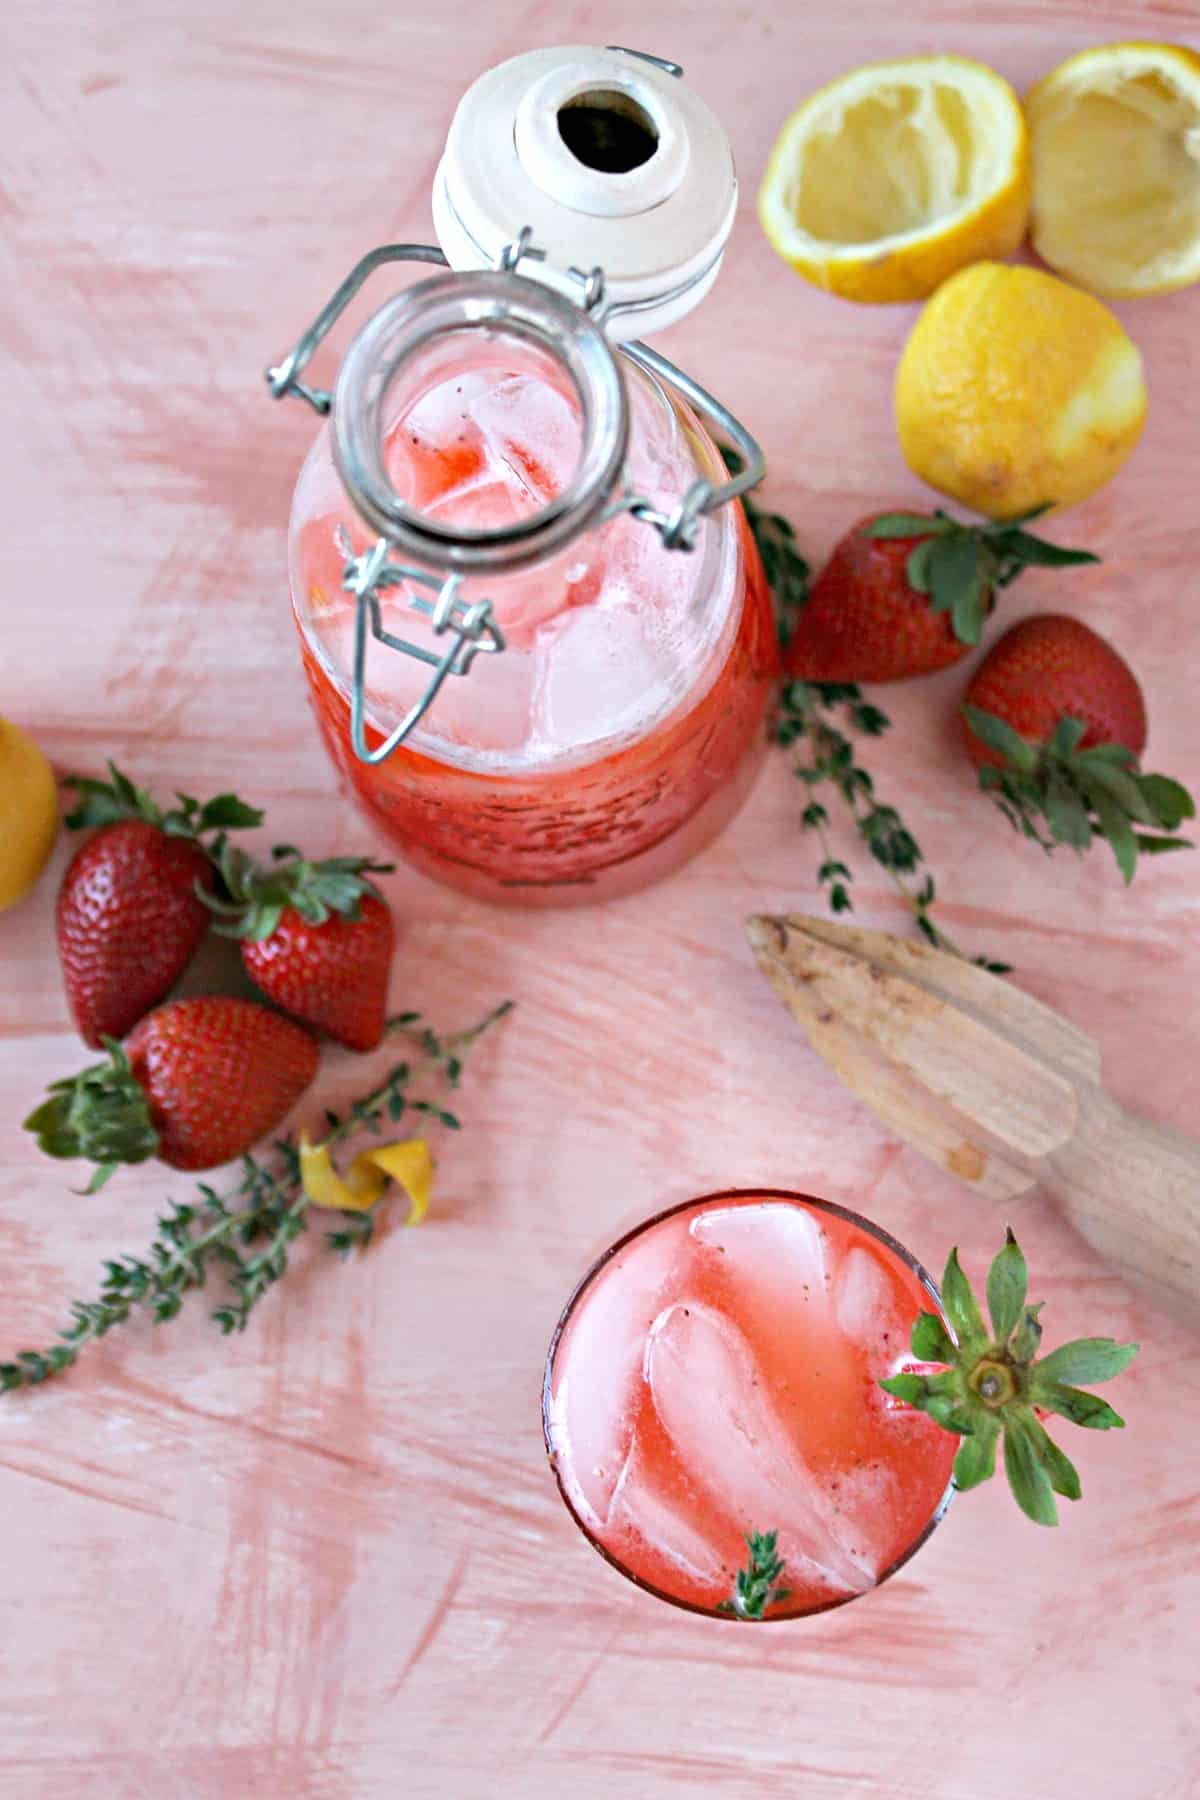 Strawberry-Thyme Lemonade! Sweet strawberries, take the pucker out of fresh-squeezed lemon juice in this delicious version of classic lemonade. The addition of homemade thyme-infused simple syrup adds a delightfully herbaceous note. It's spring in a glass!